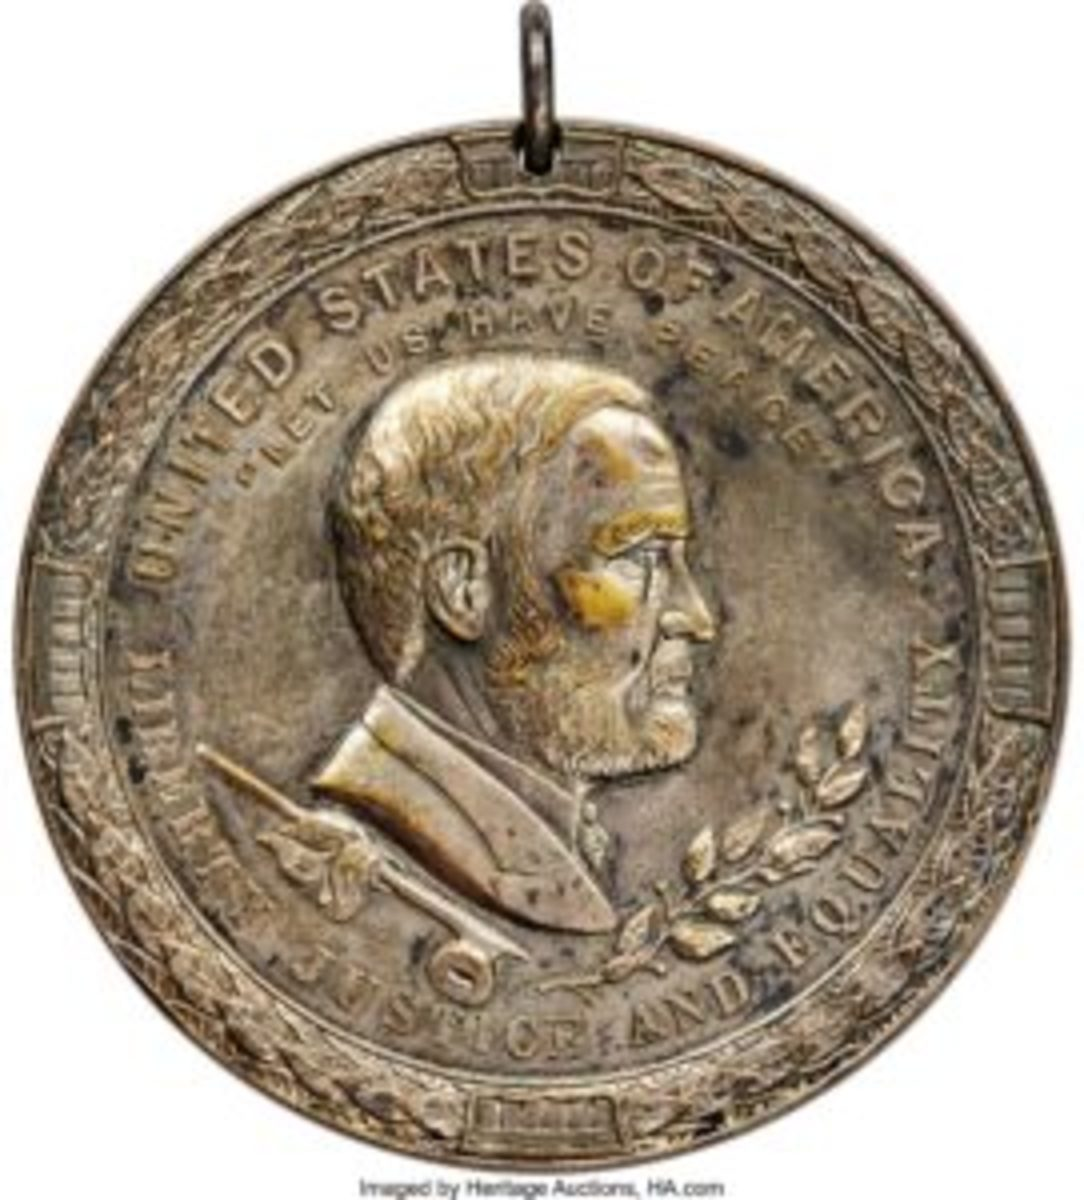 1850 Millard Fillmore Indian Peace Medal in silver, $18,600. Hand-engraved, it was presented to Chief Maungwudaus and dated October 10, 1851. The medal is holed at the top for suspension and the oval loop still remains.